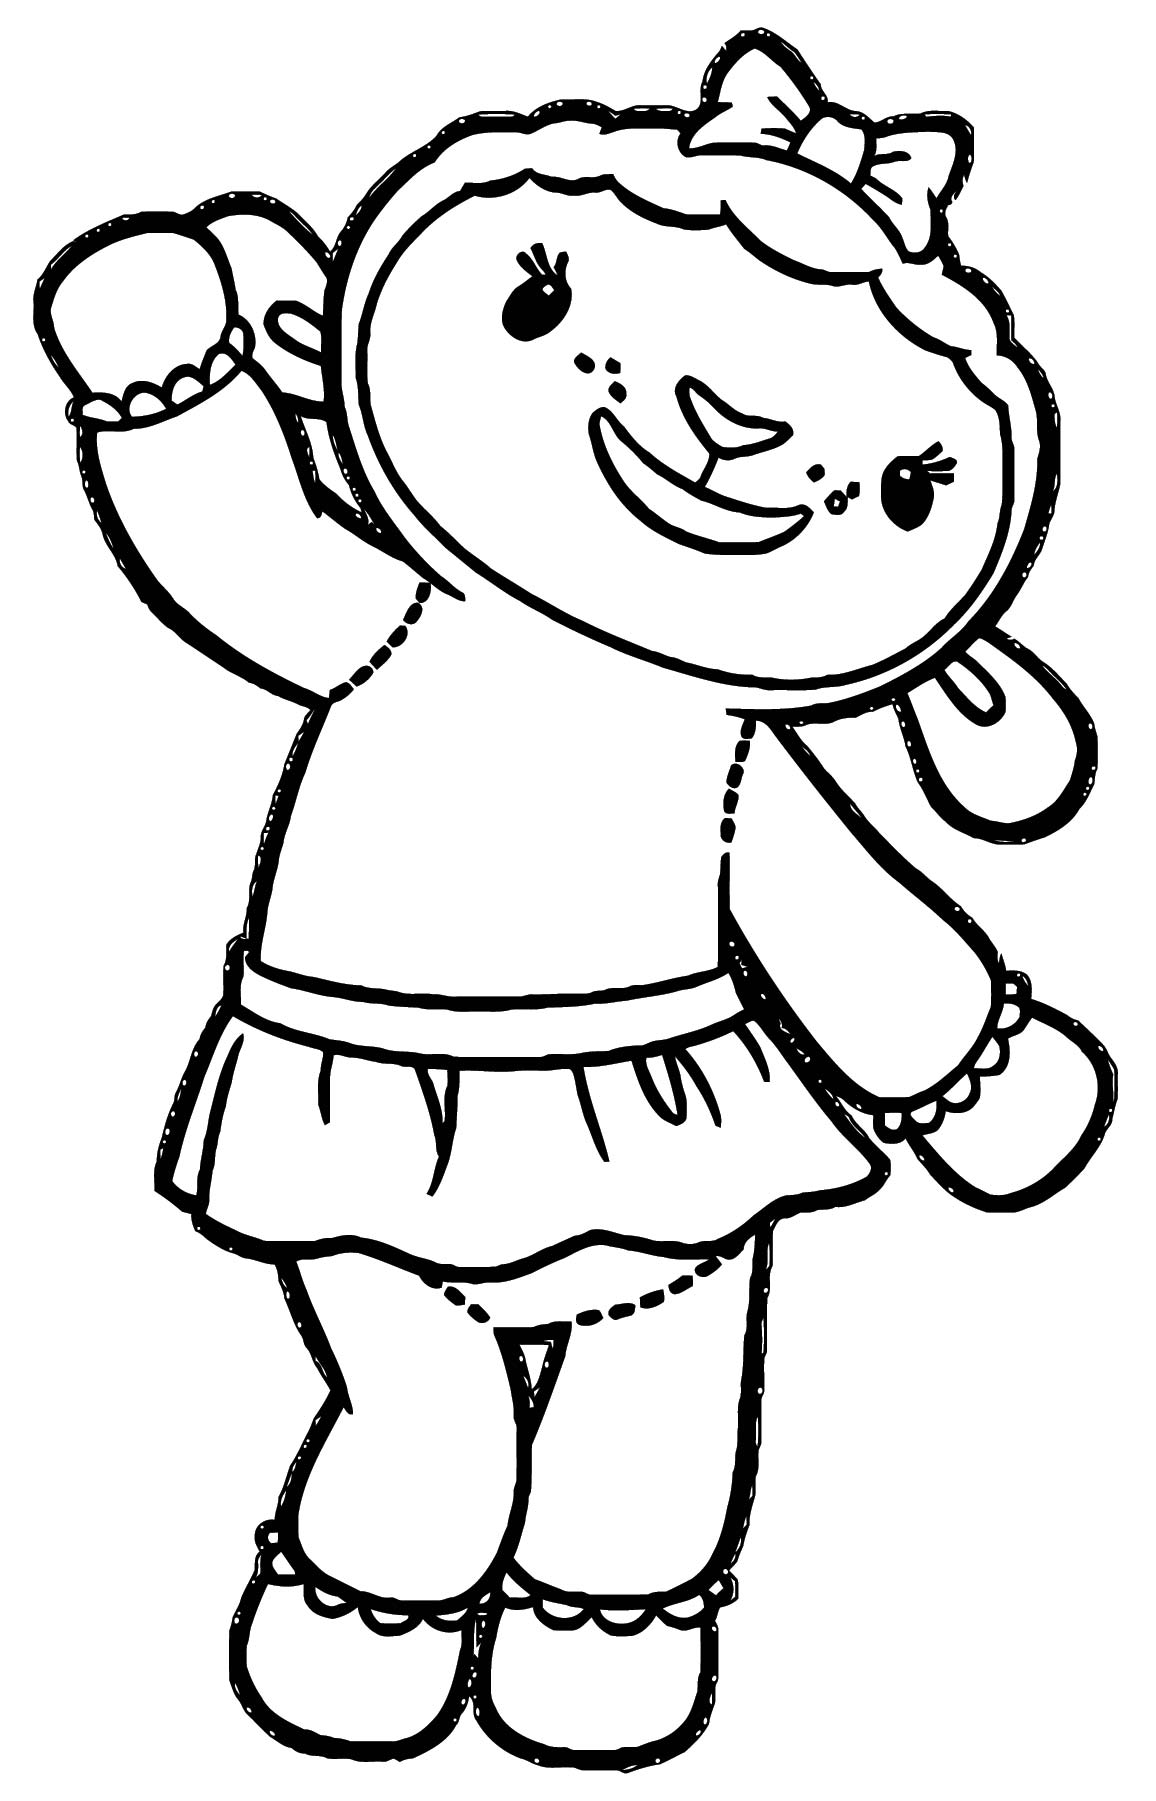 lambie joy sheep coloring page